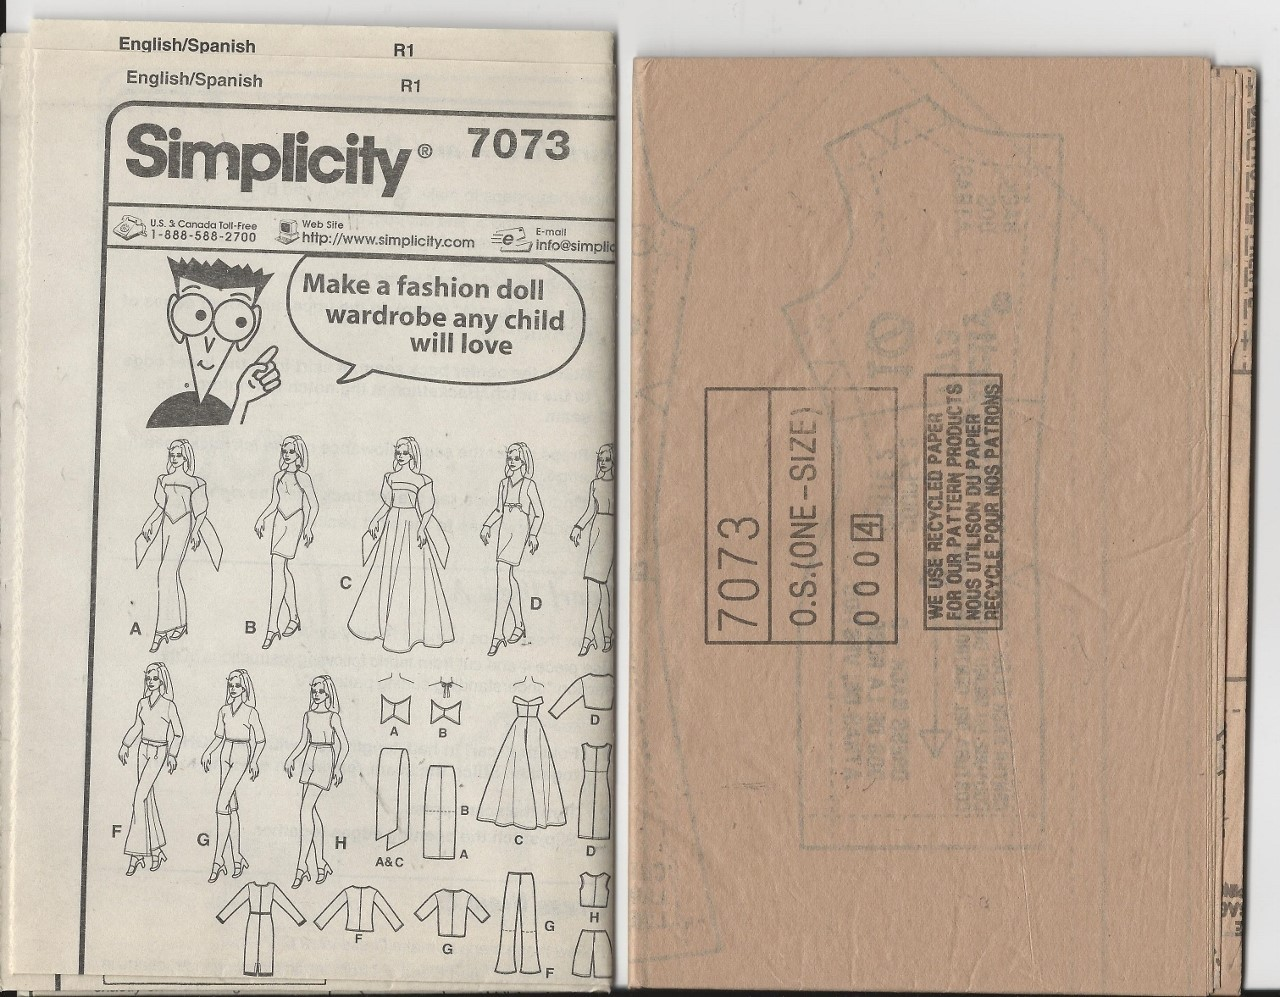 Barbie Clothes Pattern Simplicity 7073, Dress Skirt Pants Top, 11.5 Fashion Doll